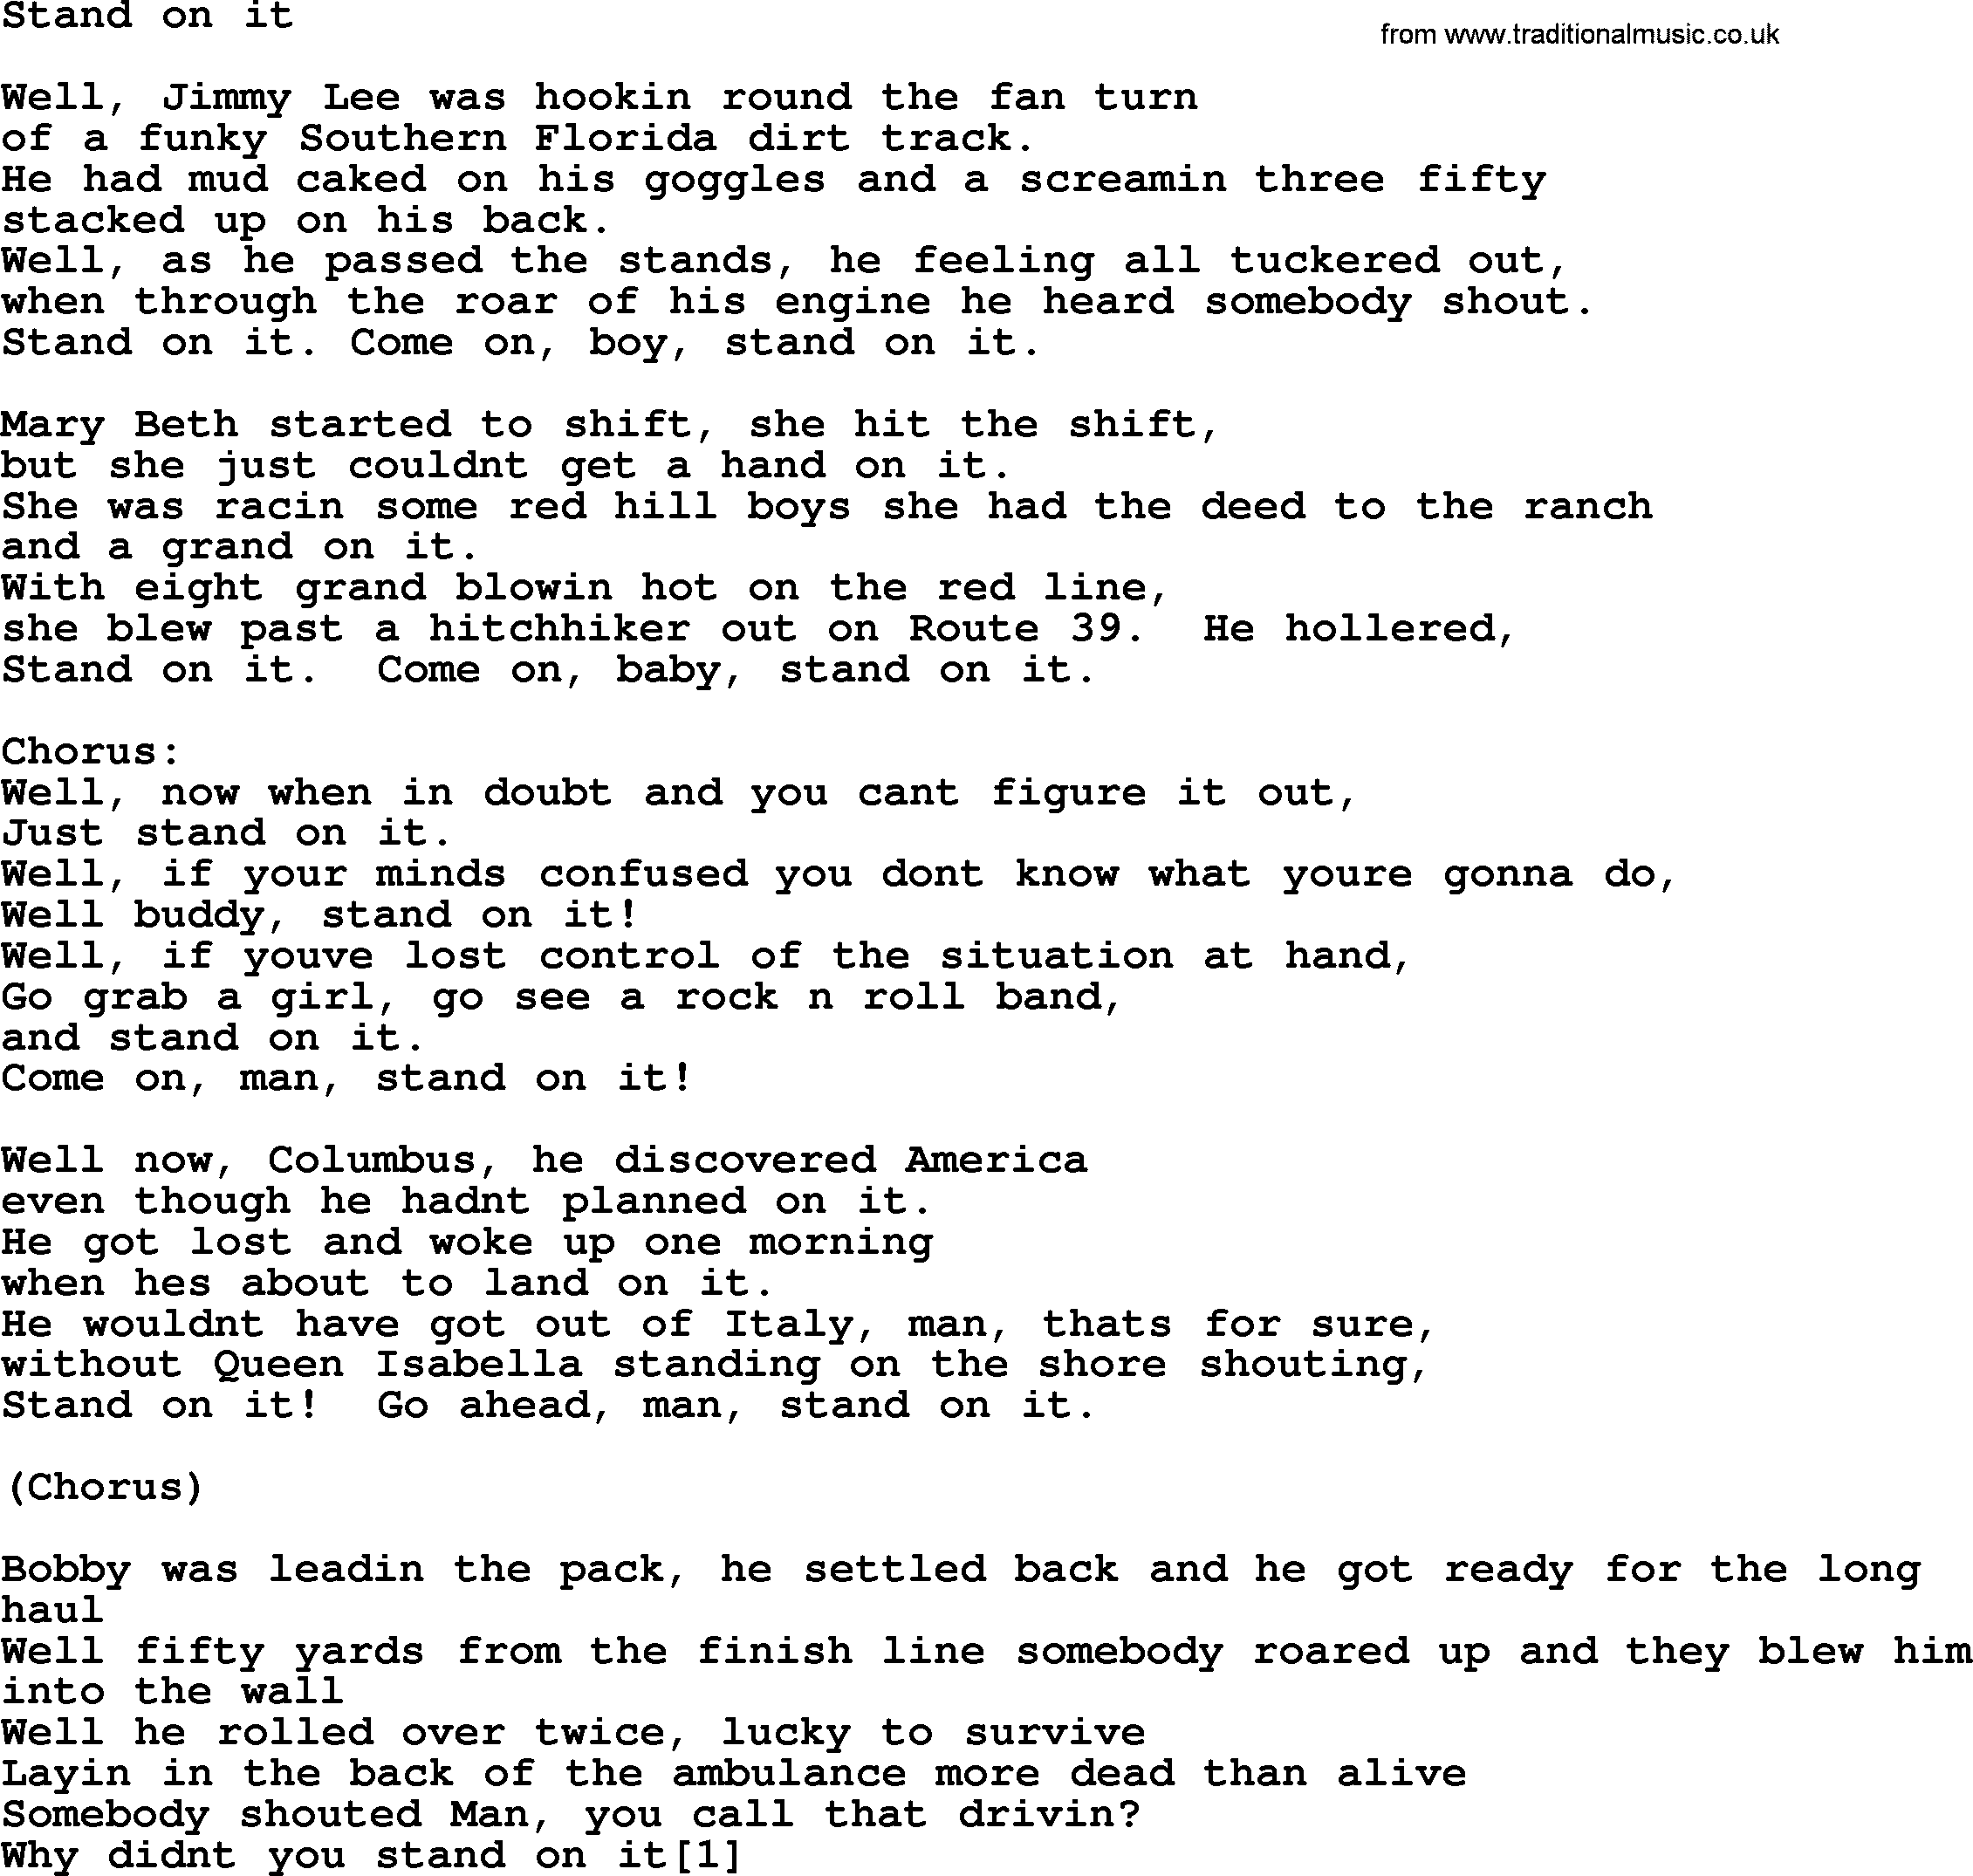 Bruce Springsteen song: Stand On It, lyrics